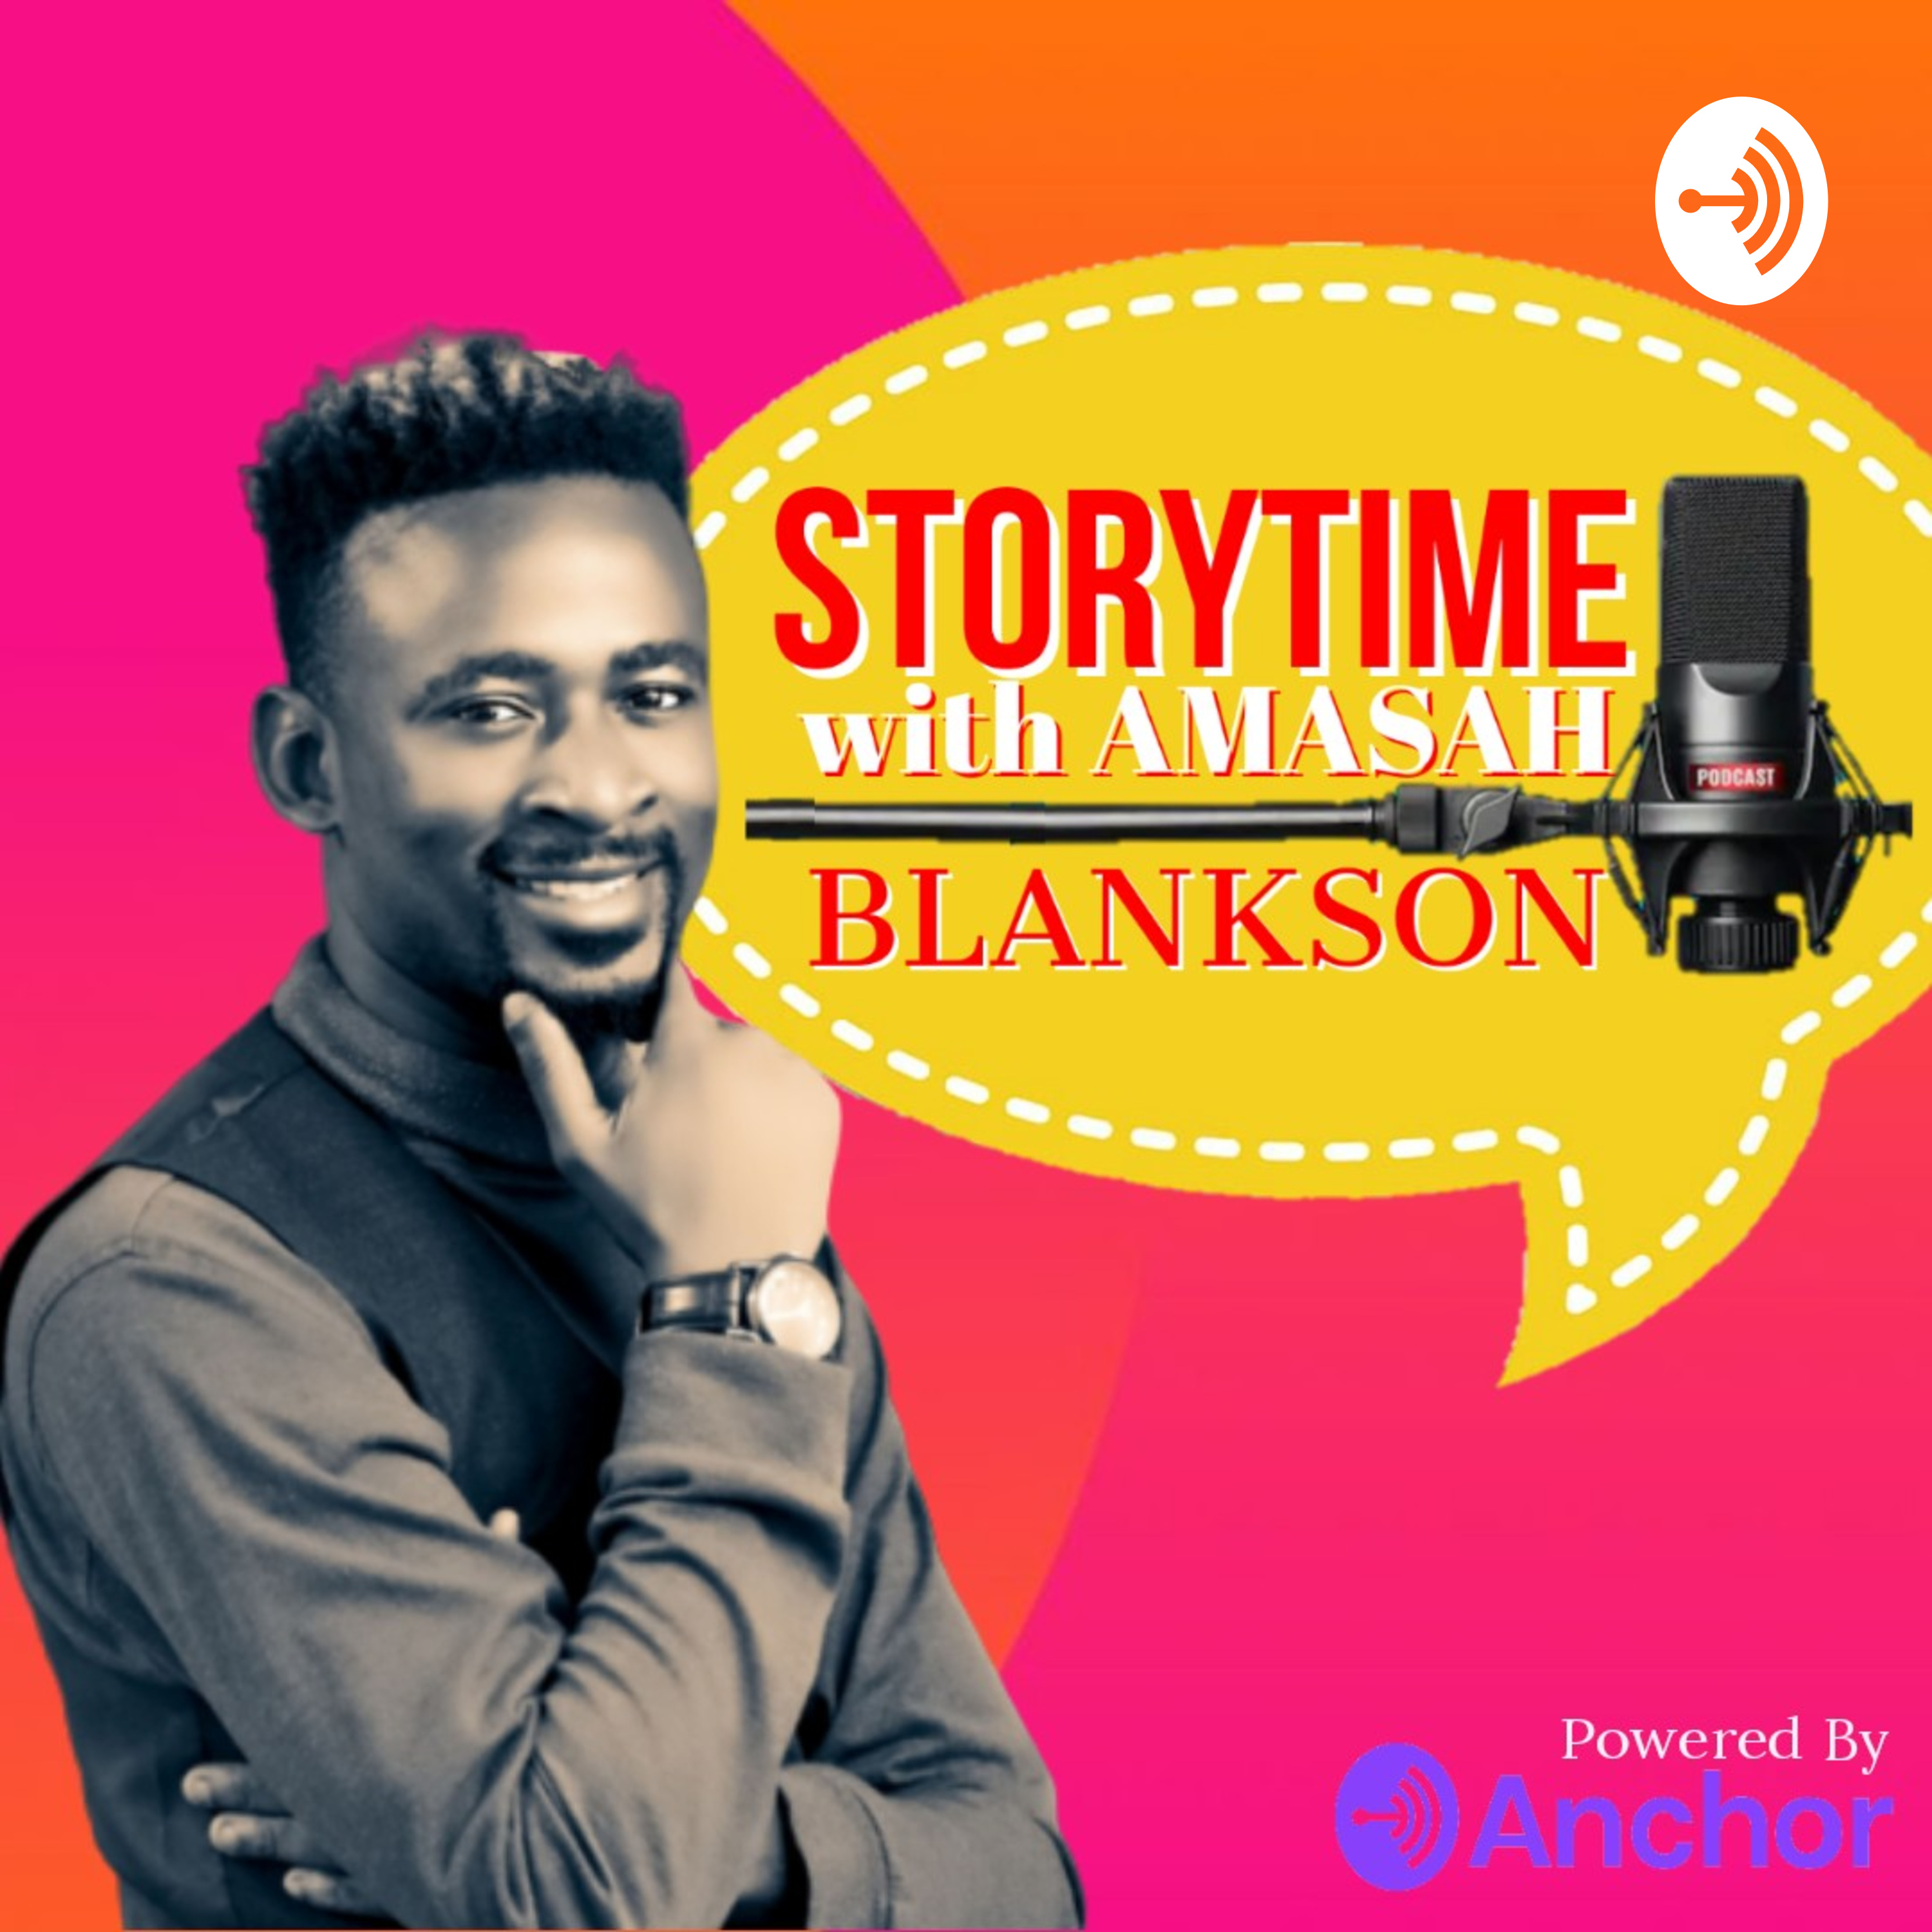 StoryTime with Amasah Blankson